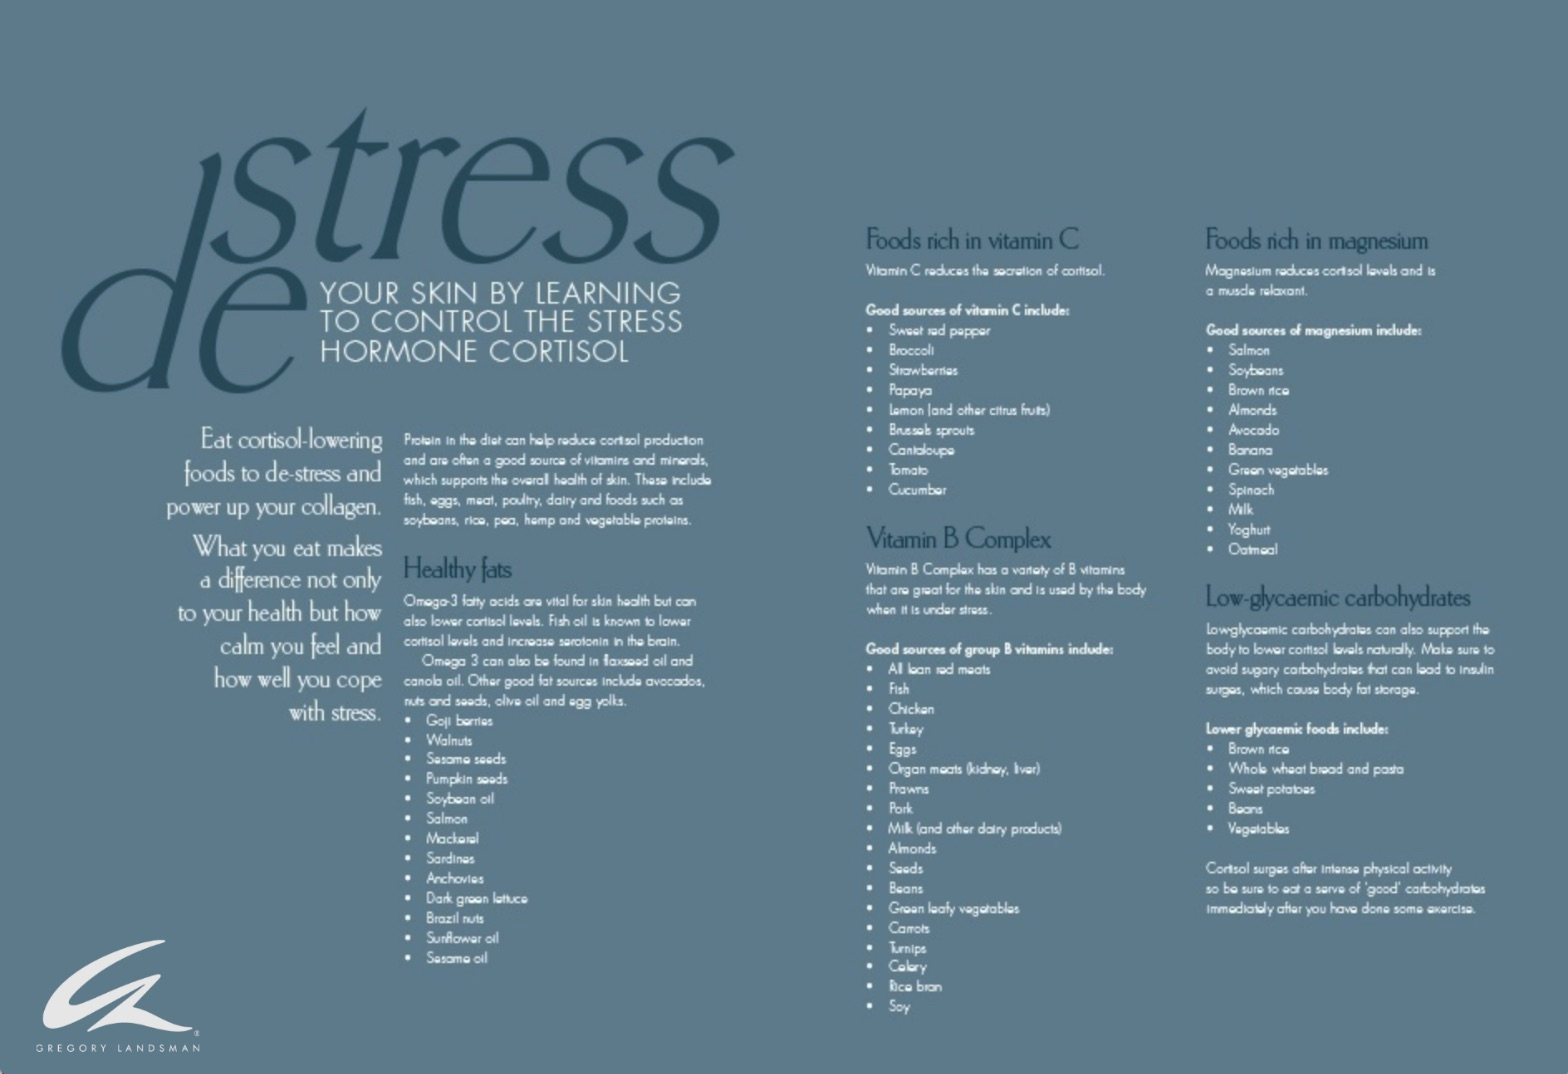 GL-Destress-by-eating-cortisol-lowering-foods